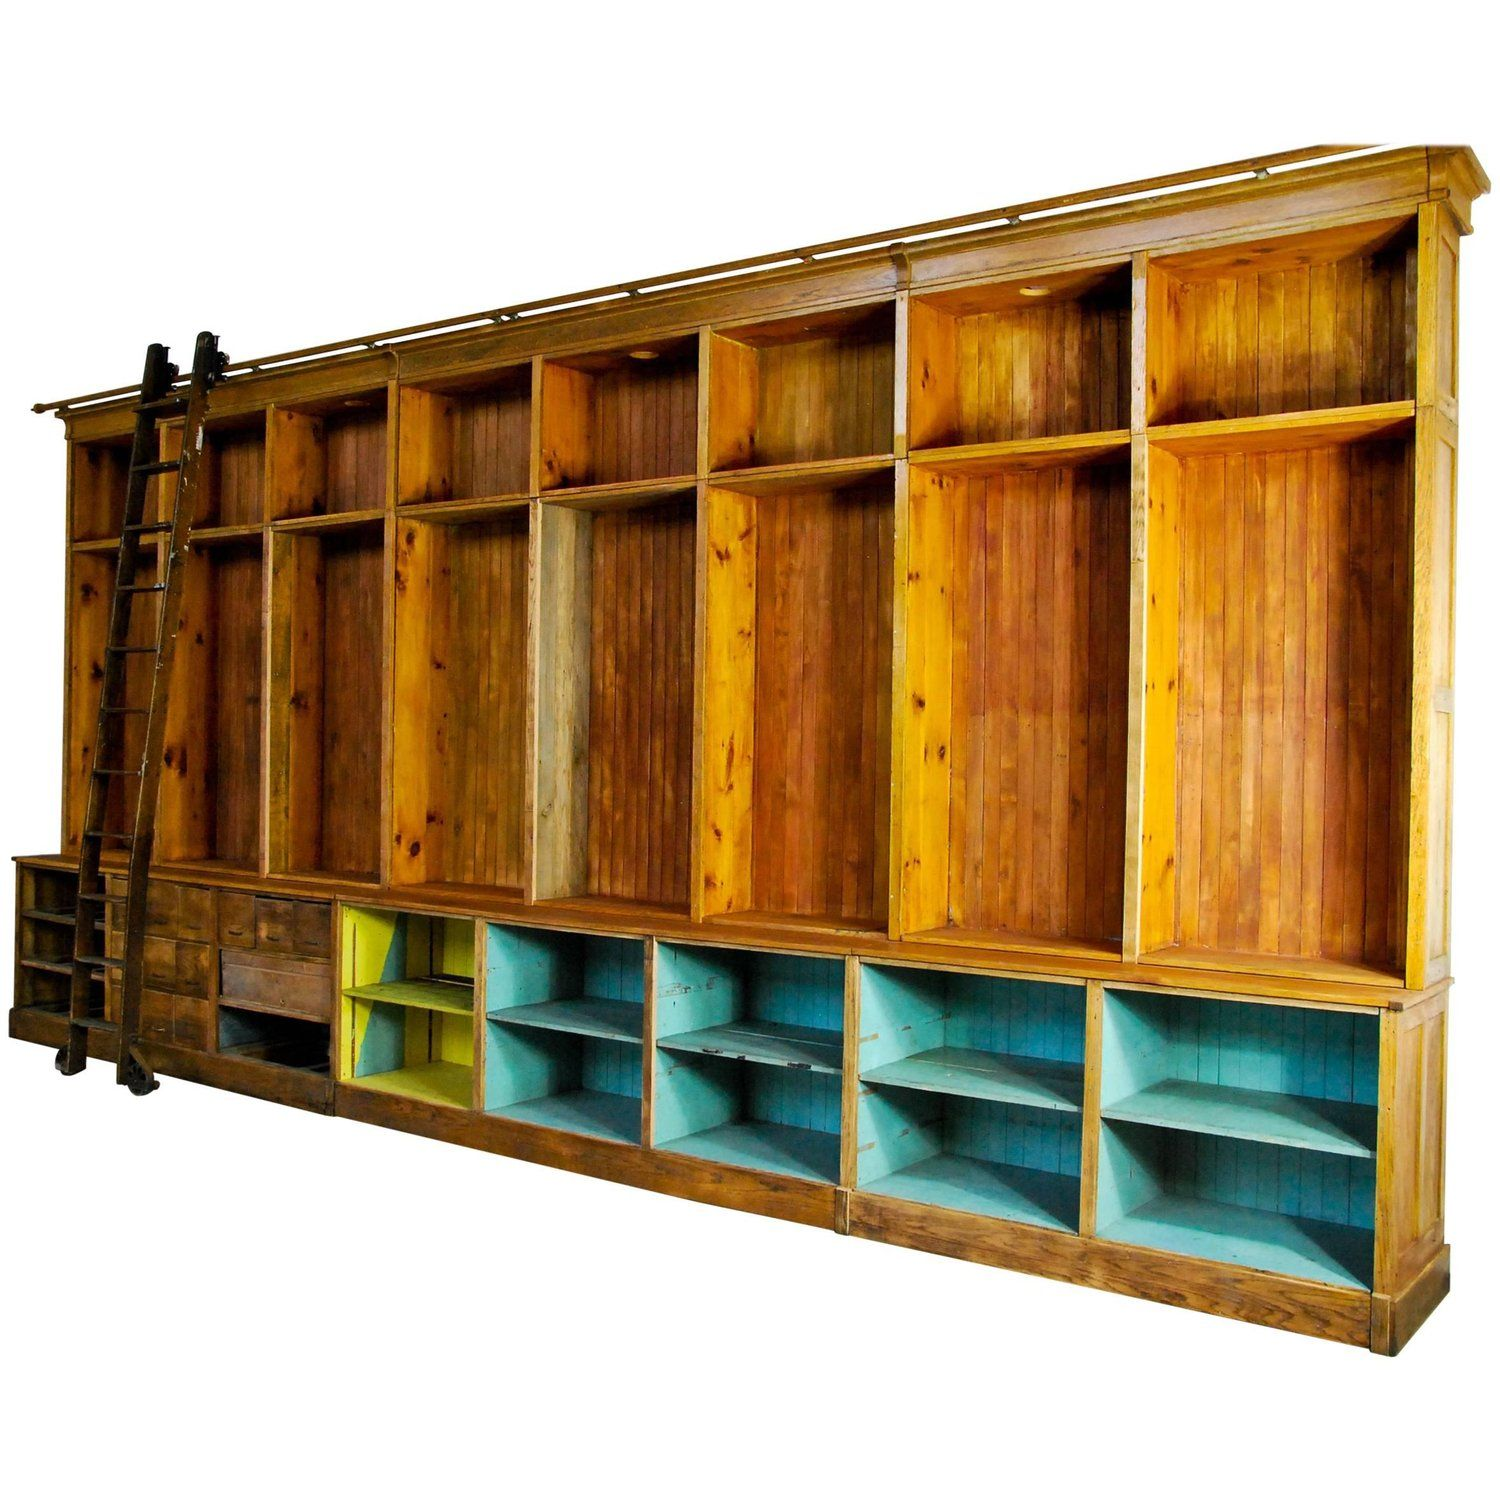 1920 Mercantile Hardware Store Retail Back Bar Cabinet with Rolling